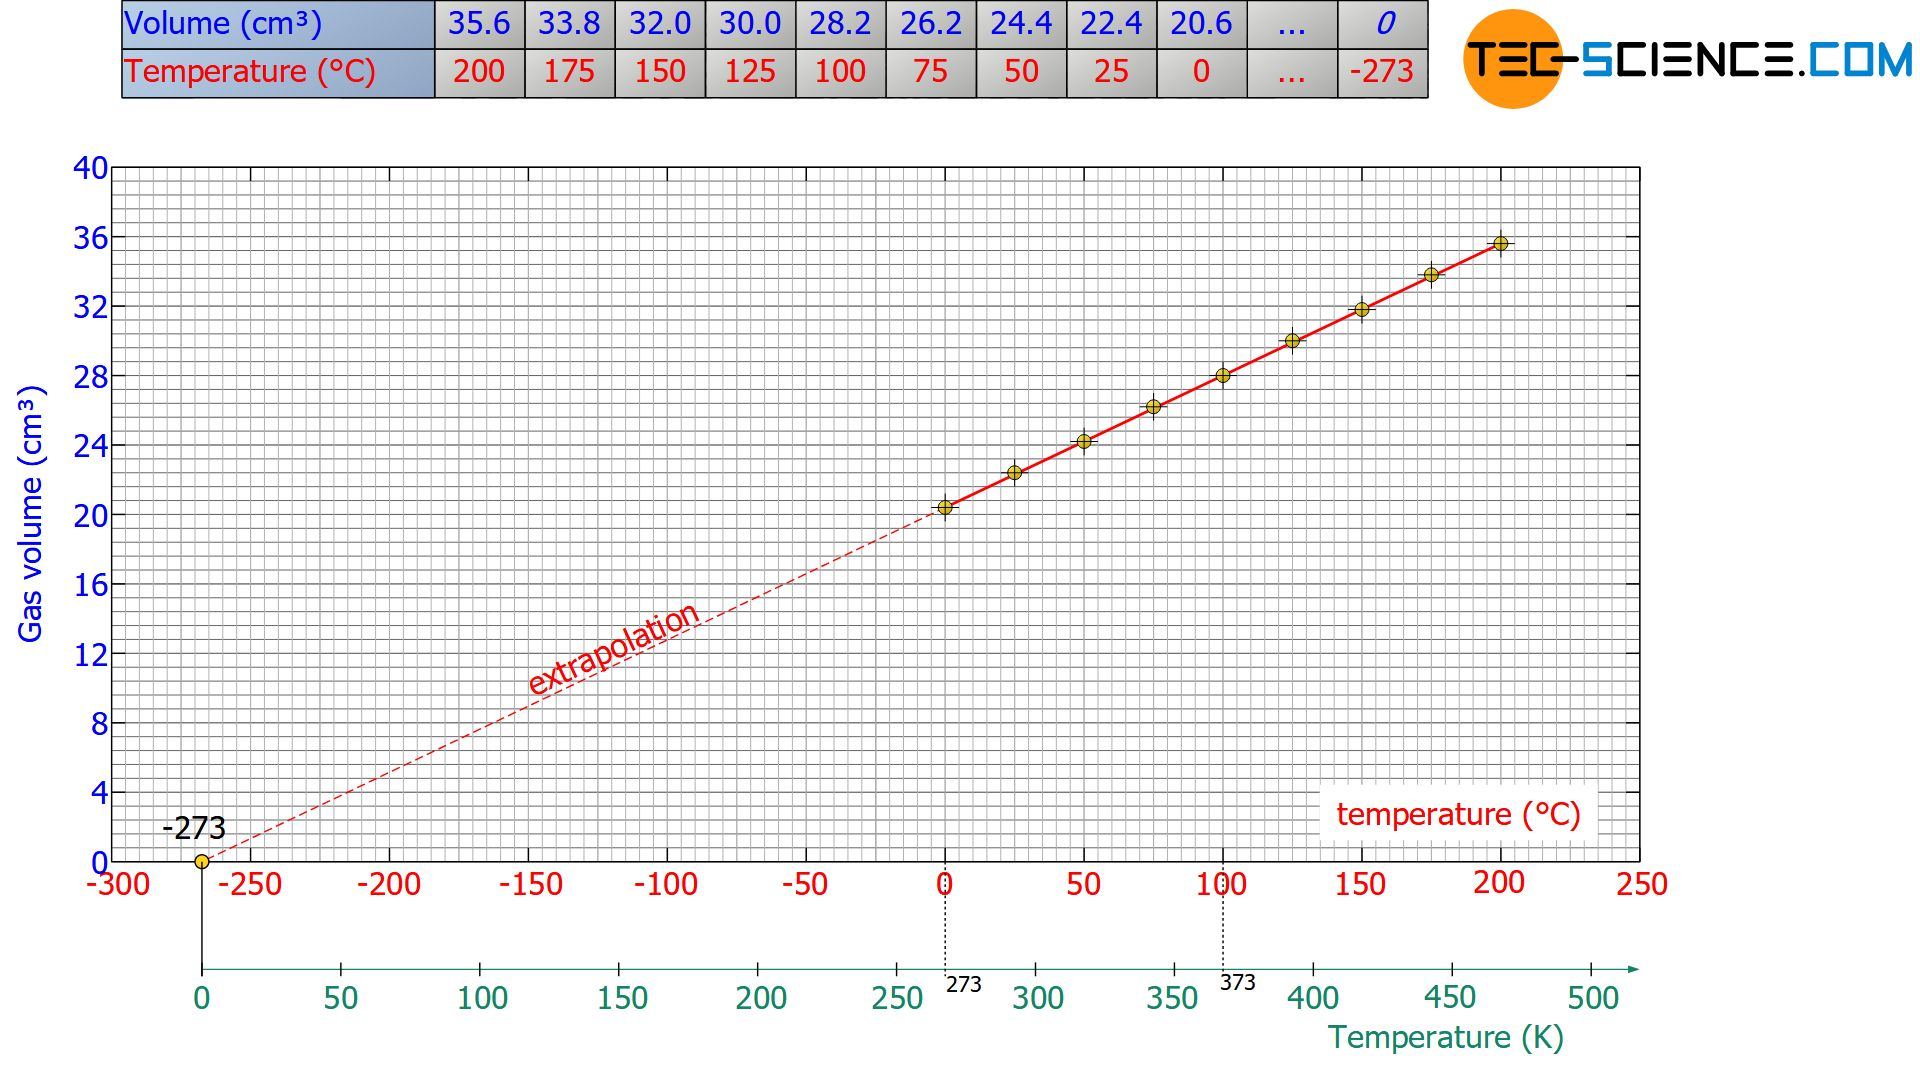 Evaluation of the experiment to determine absolute zero